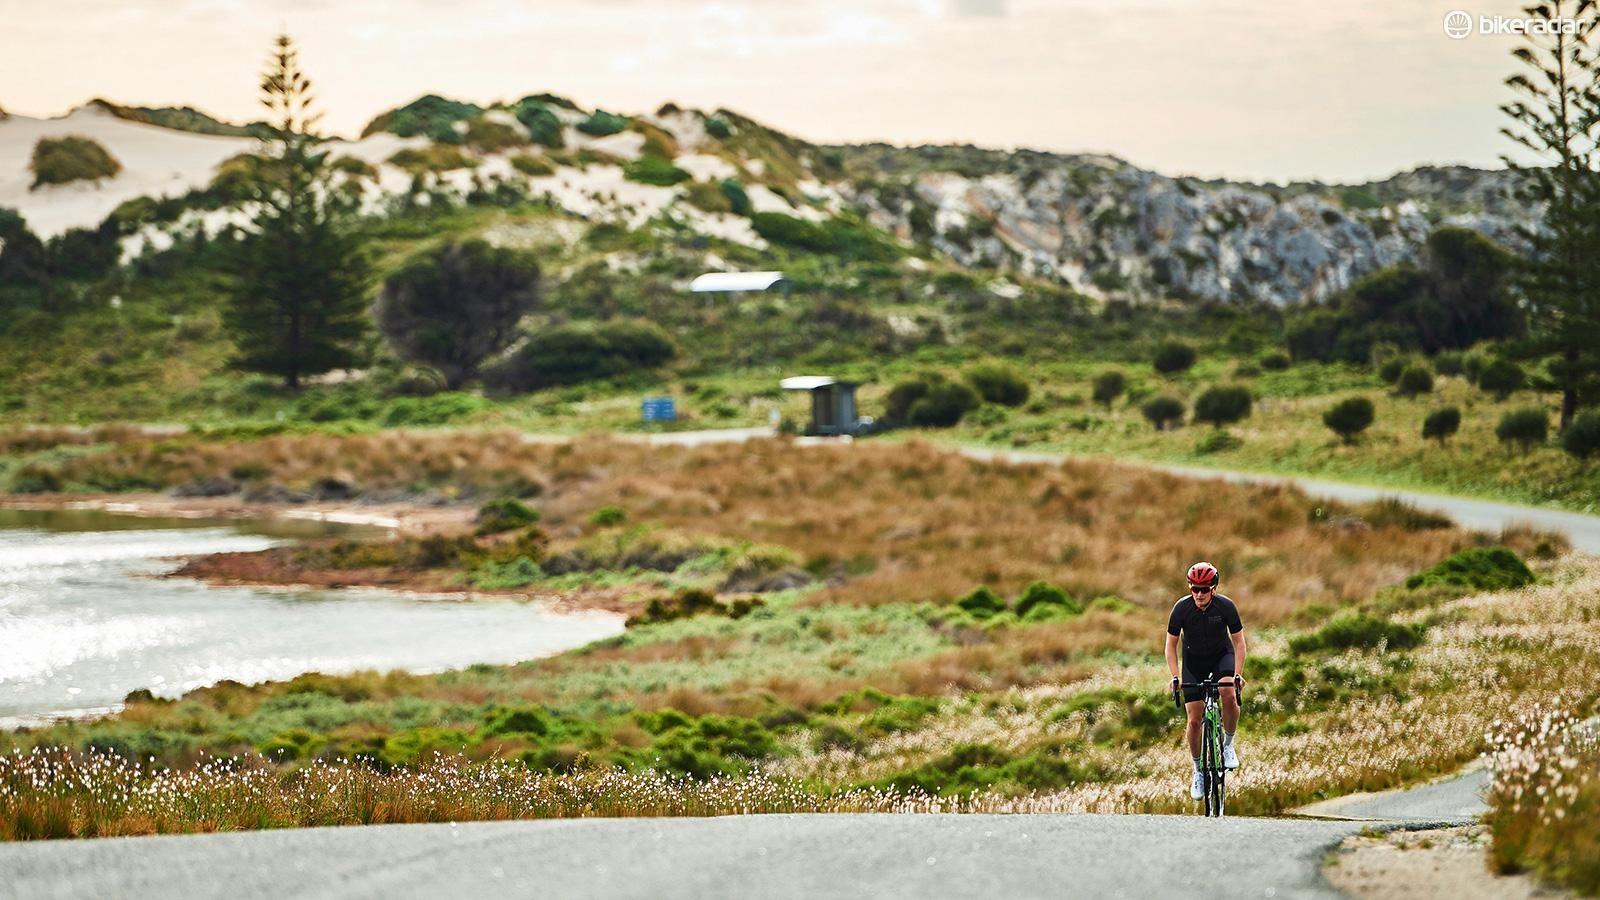 Free of motor vehicles, Rottnest is a cycling paradise